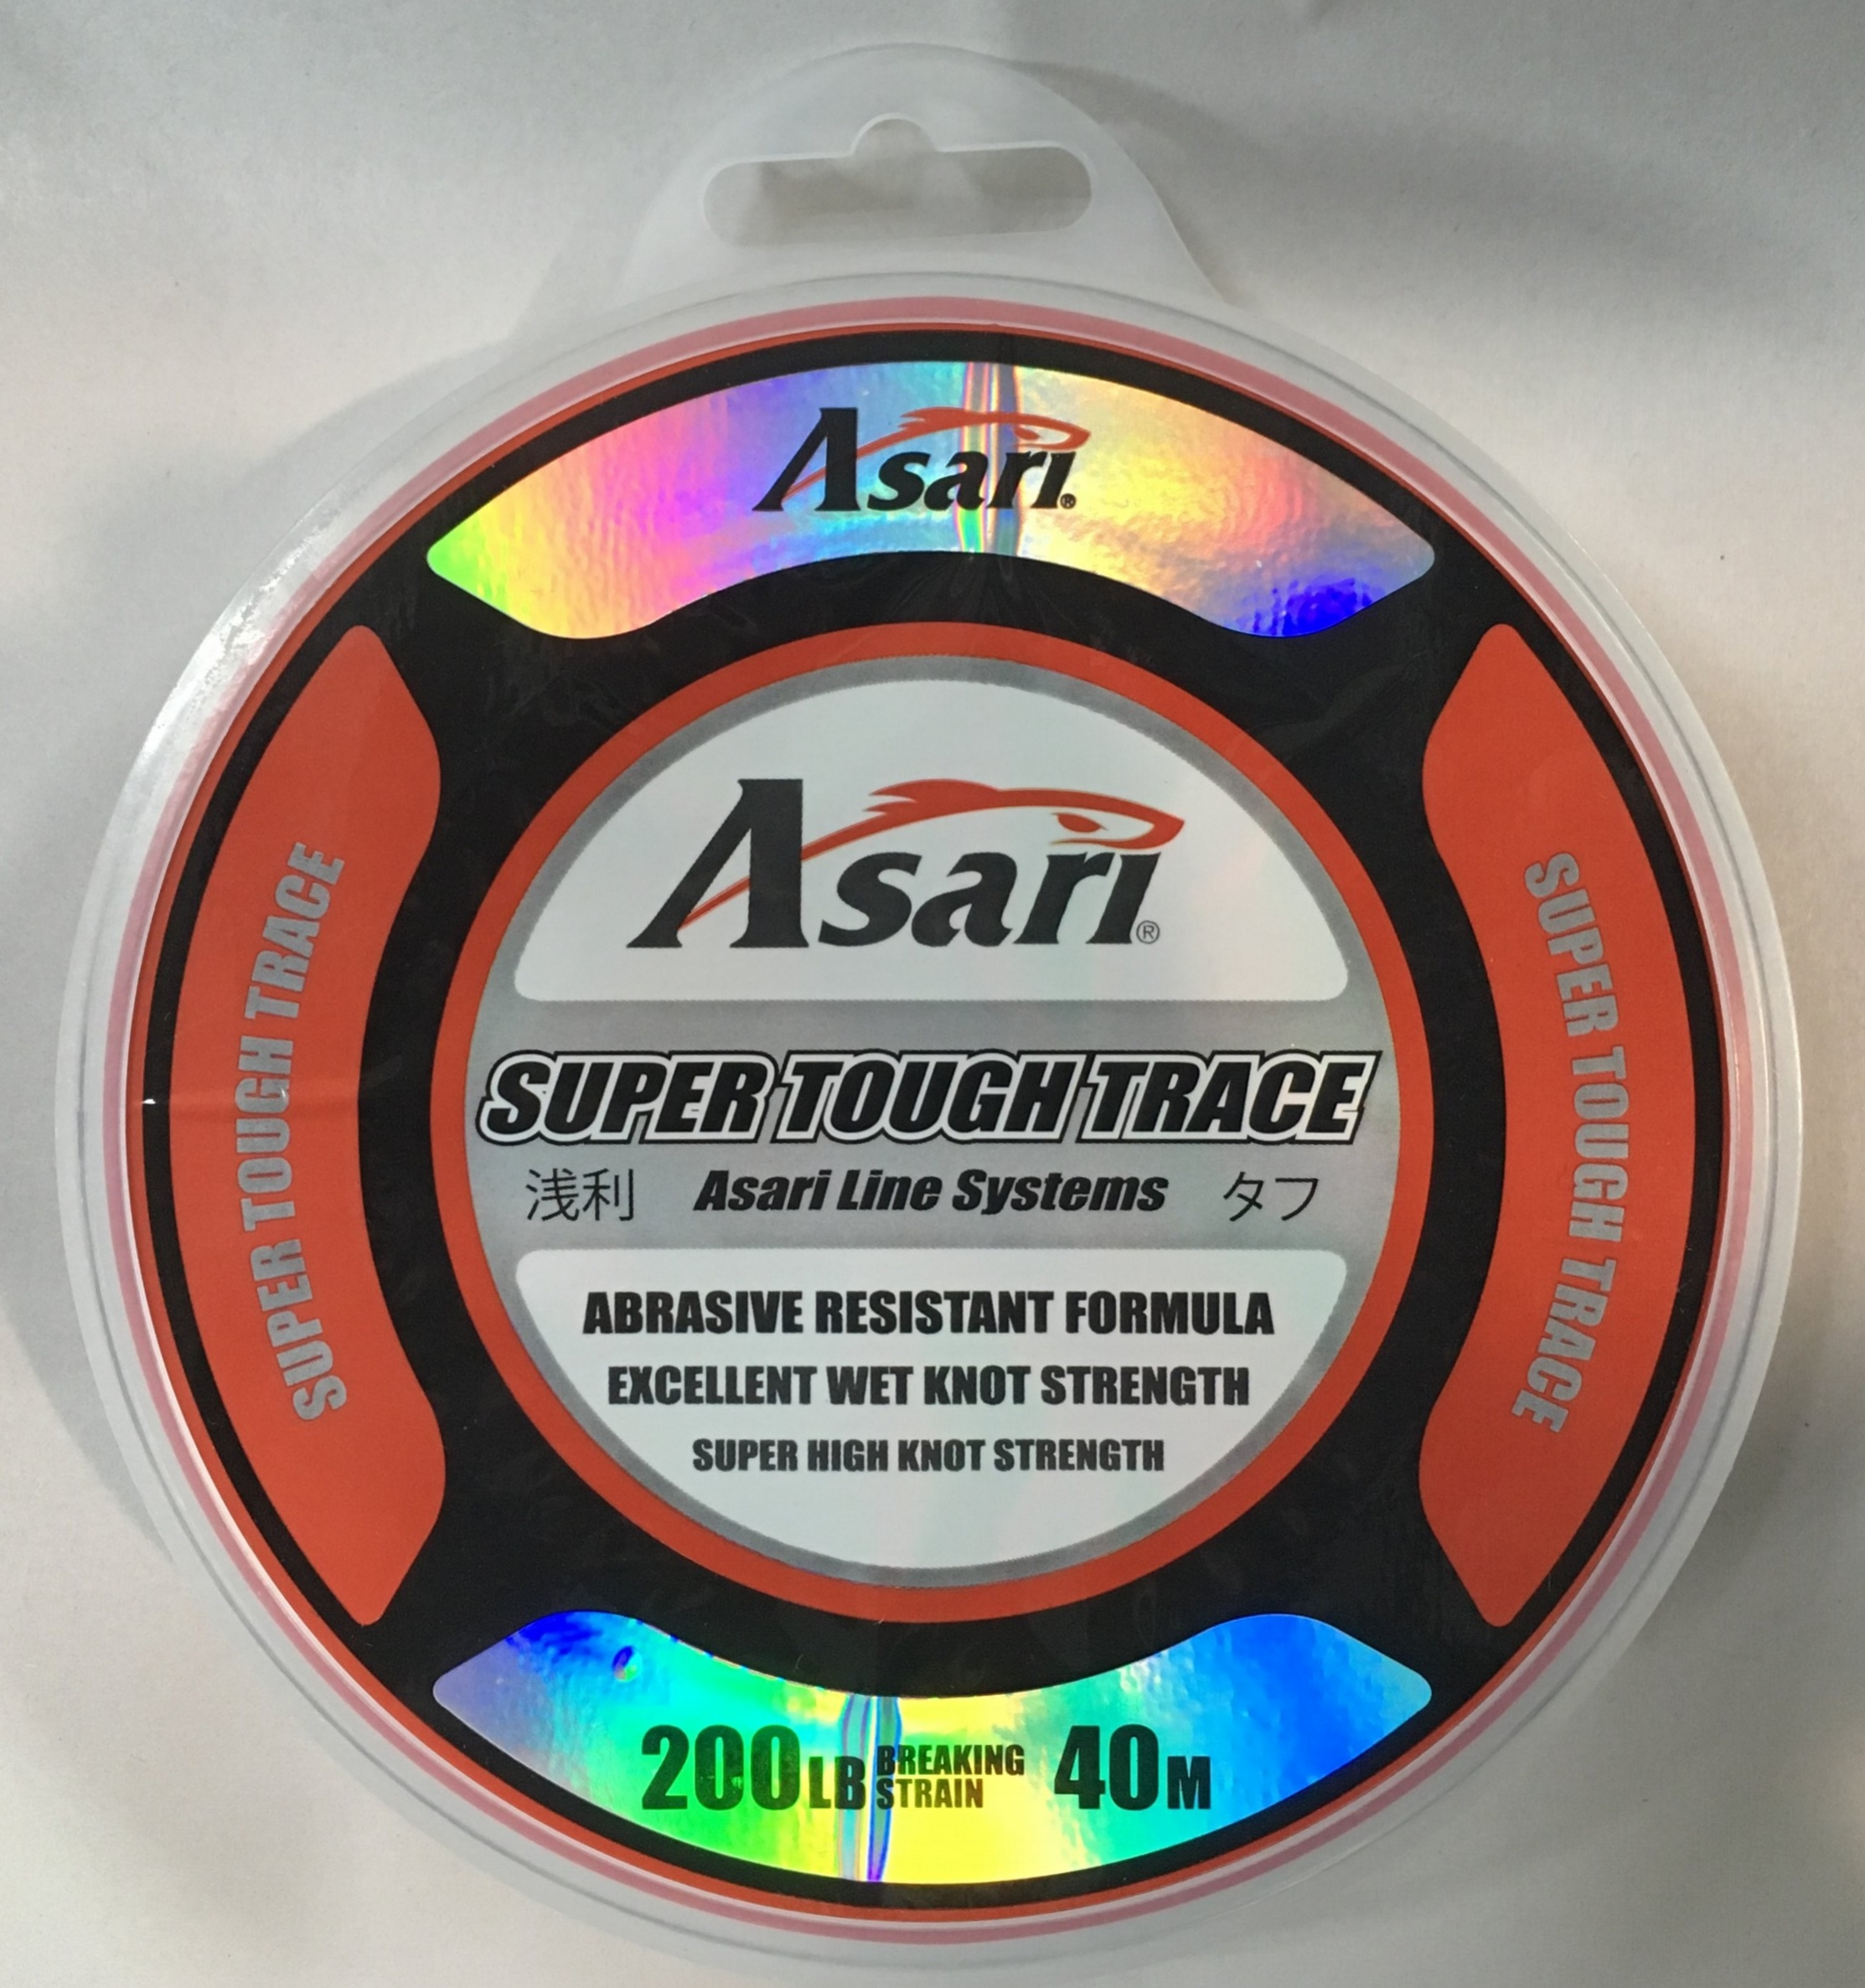 Asari Super Tough Trace